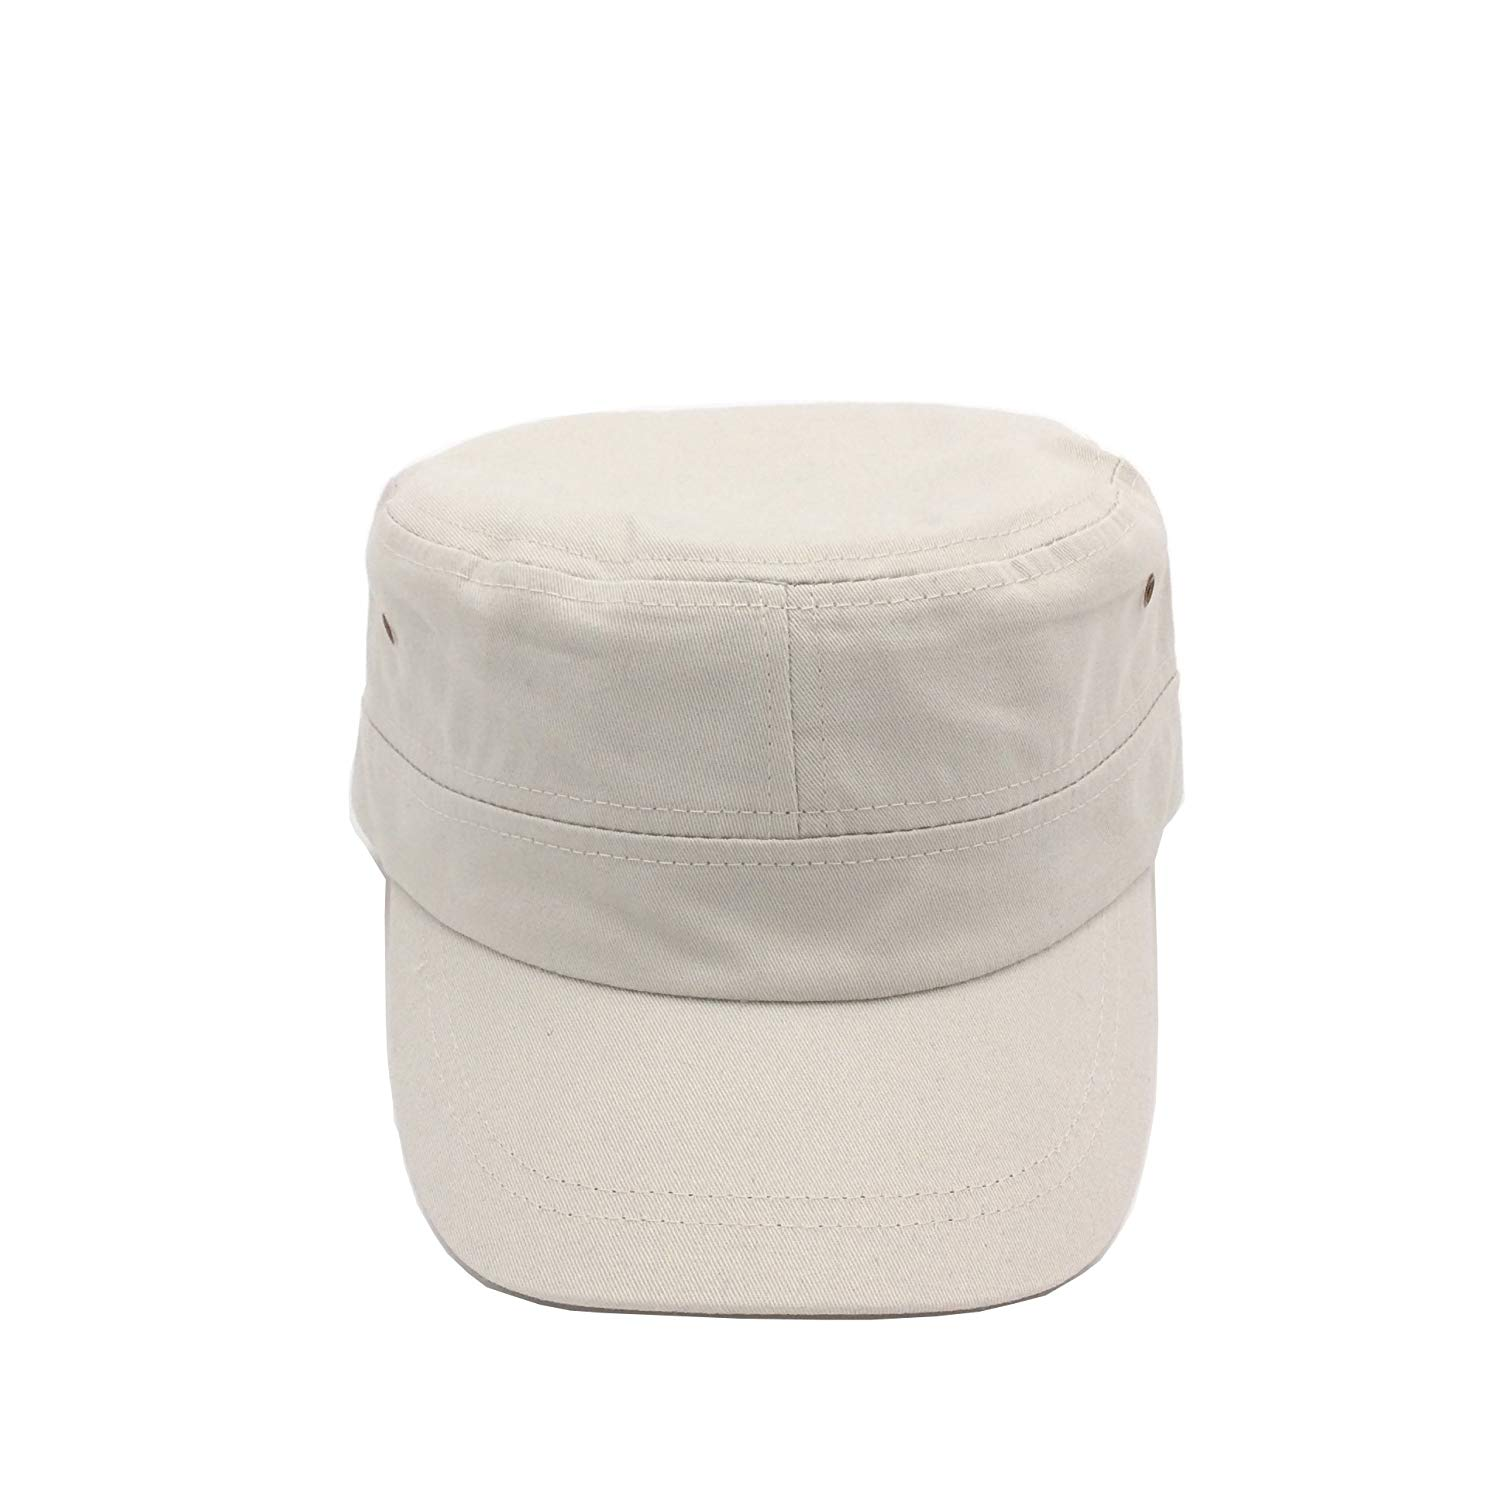 cheap blank hat template find blank hat template deals on line at